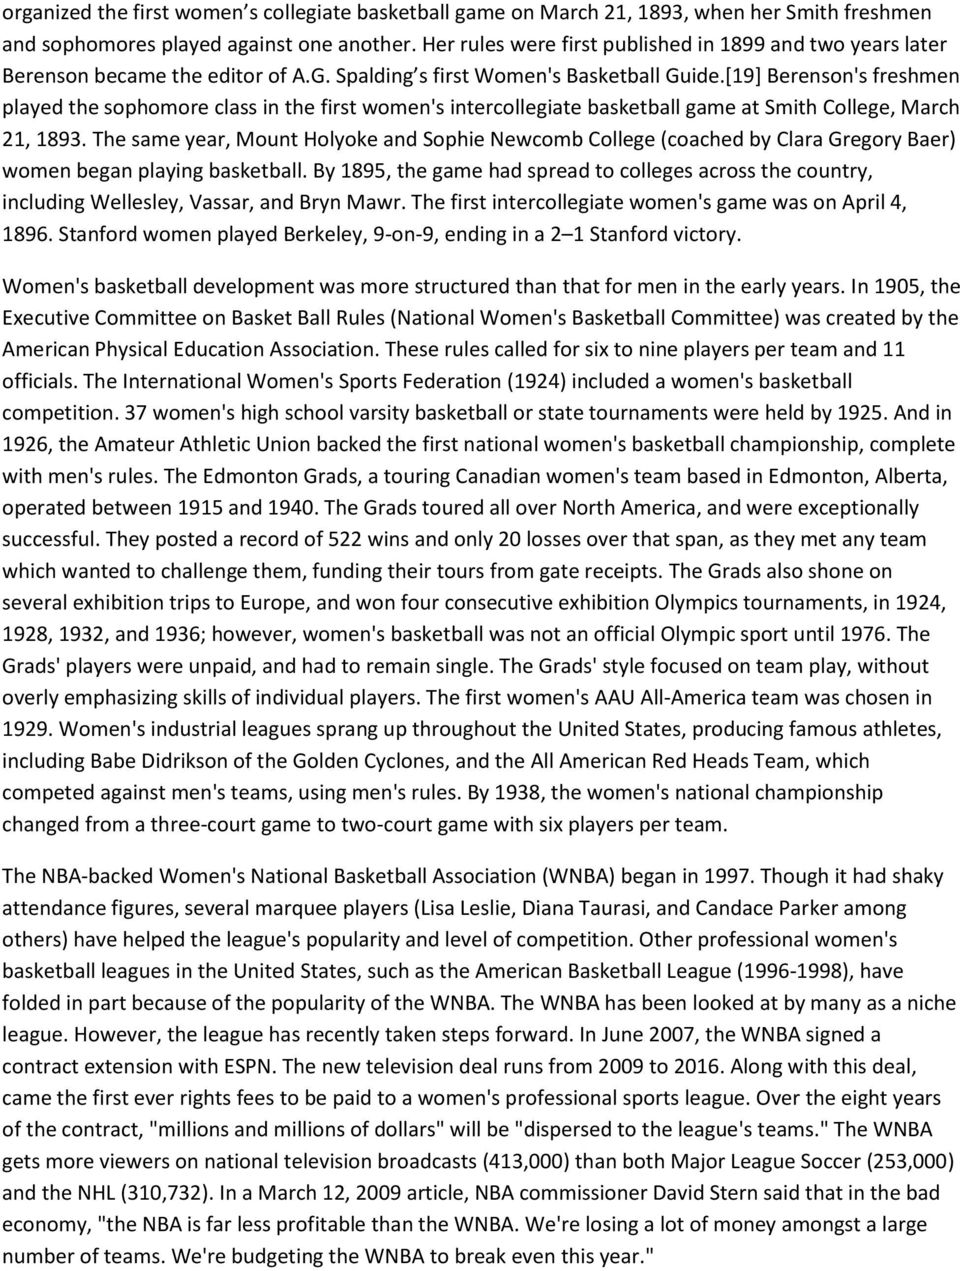 [19] Berenson's freshmen played the sophomore class in the first women's intercollegiate basketball game at Smith College, March 21, 1893.